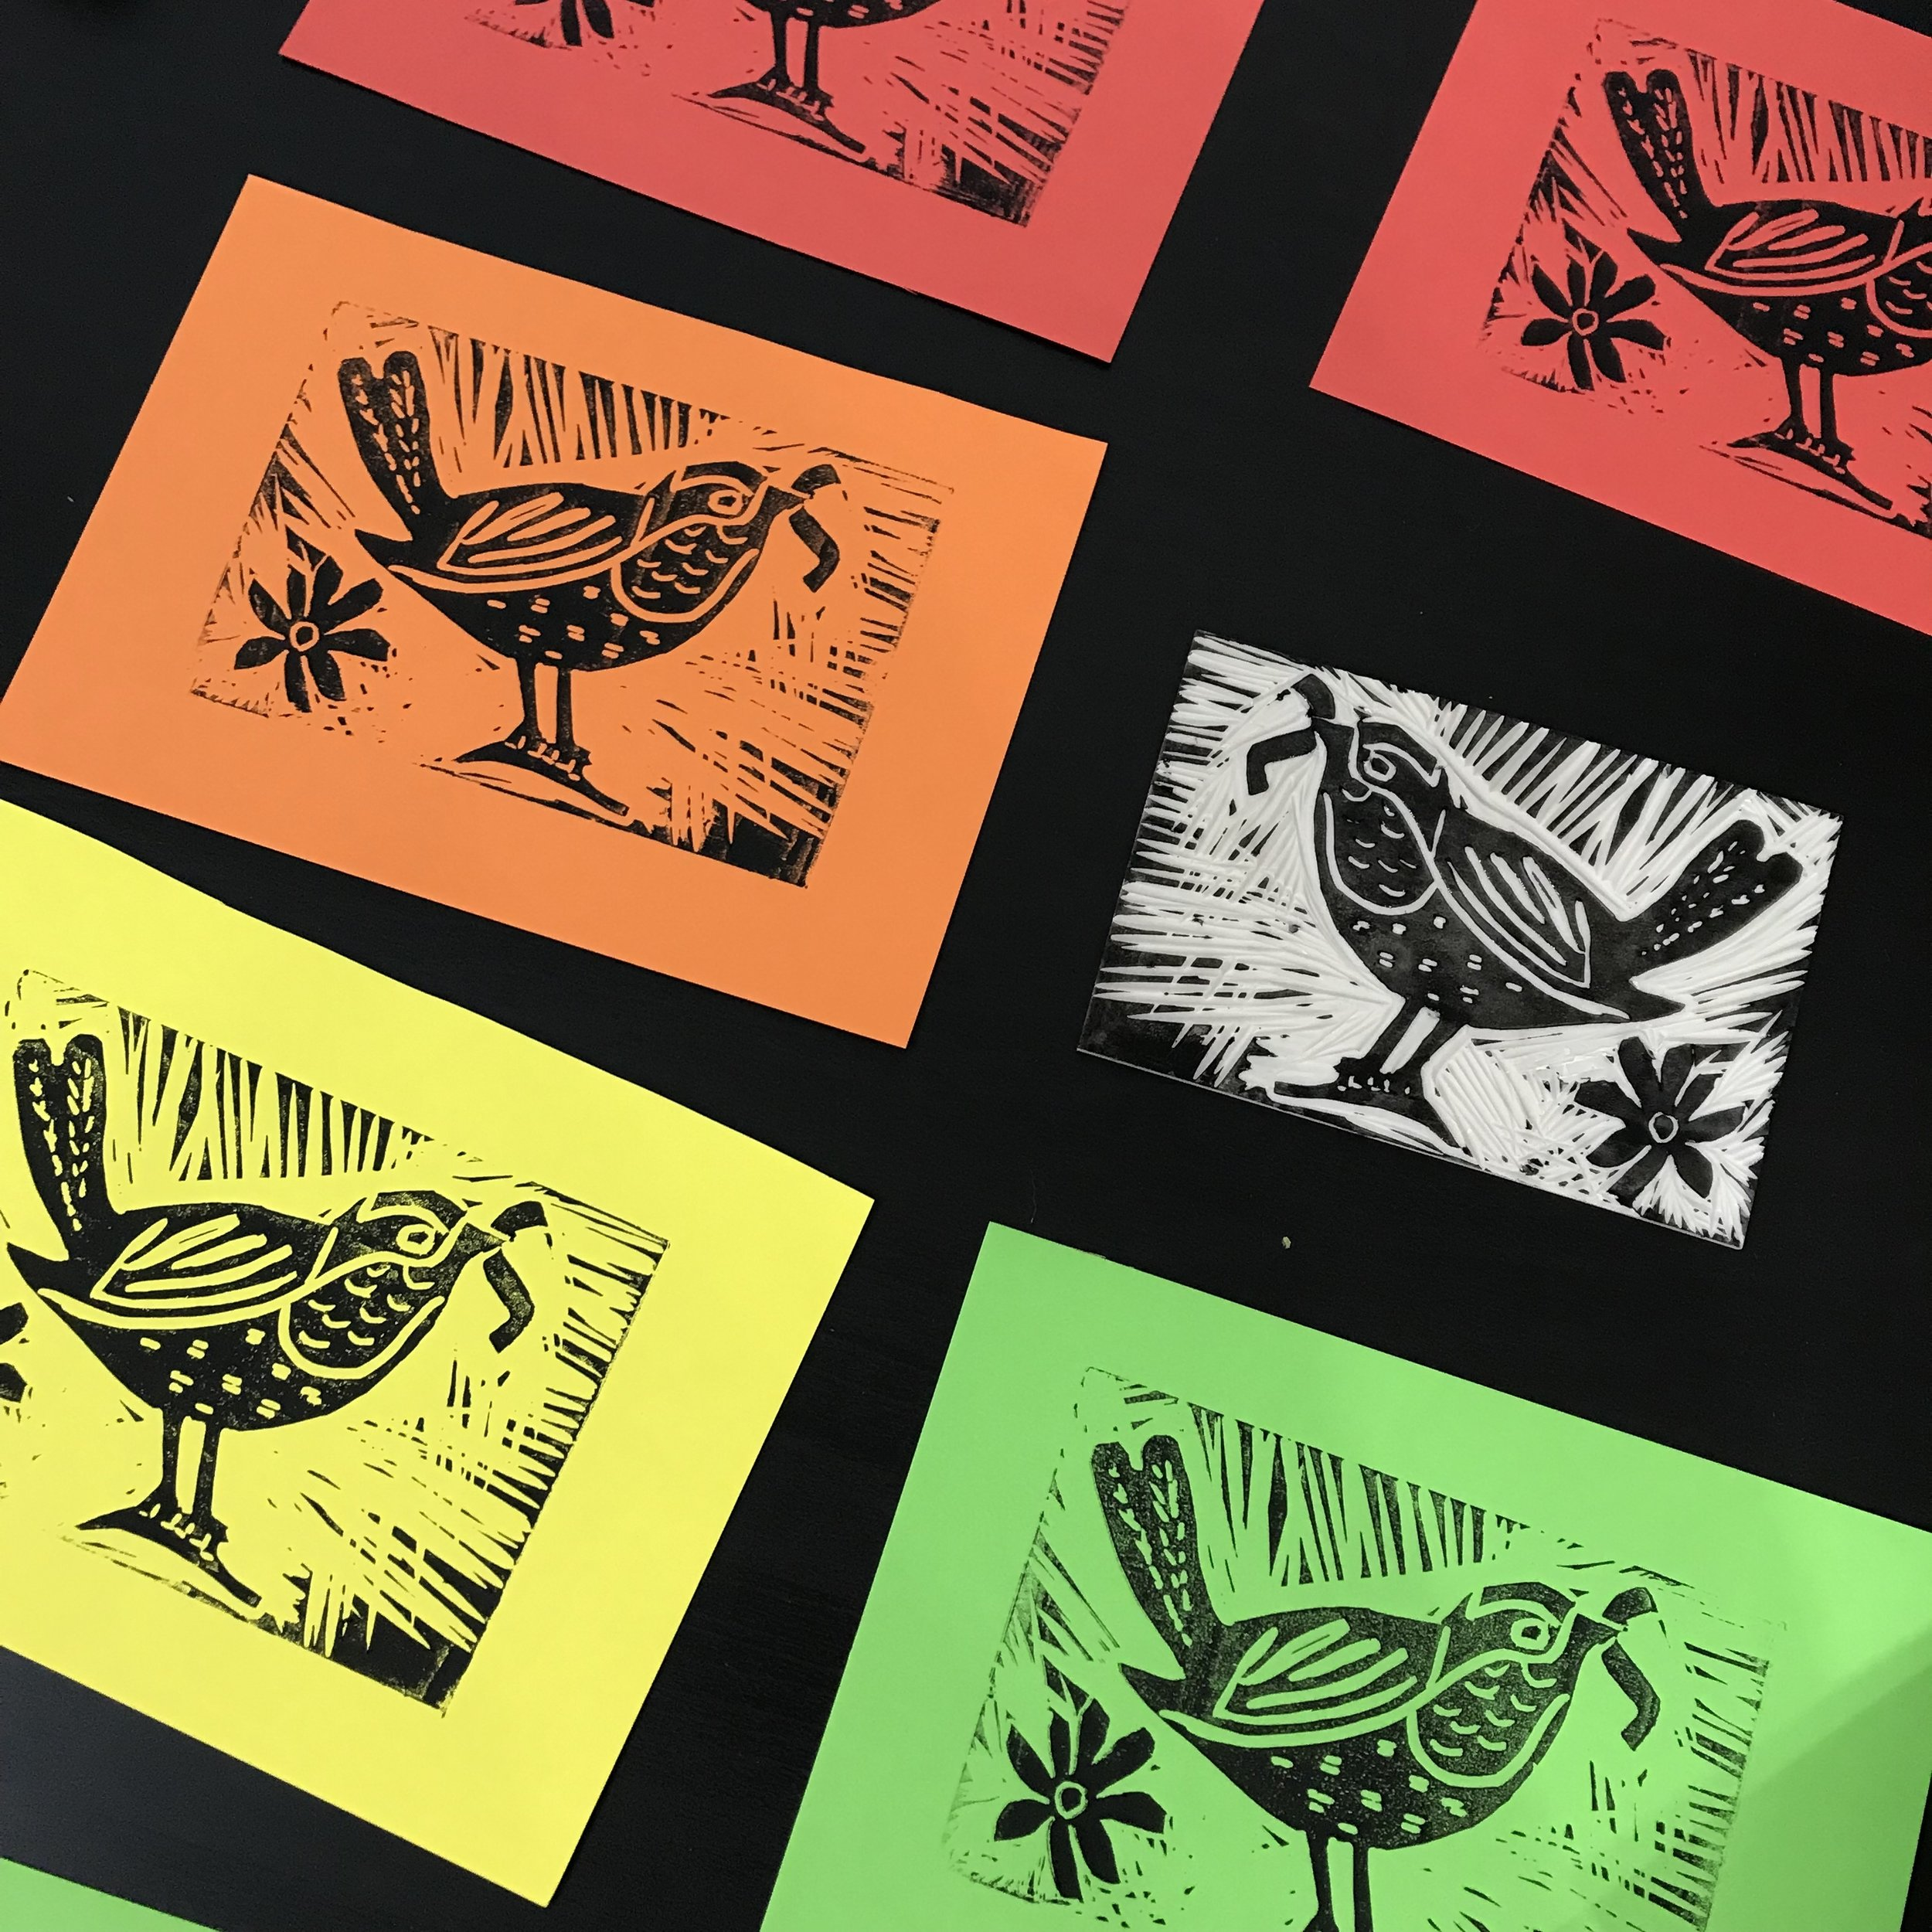 linocut-print-workshop-class-kent-chatham-rochester.jpeg